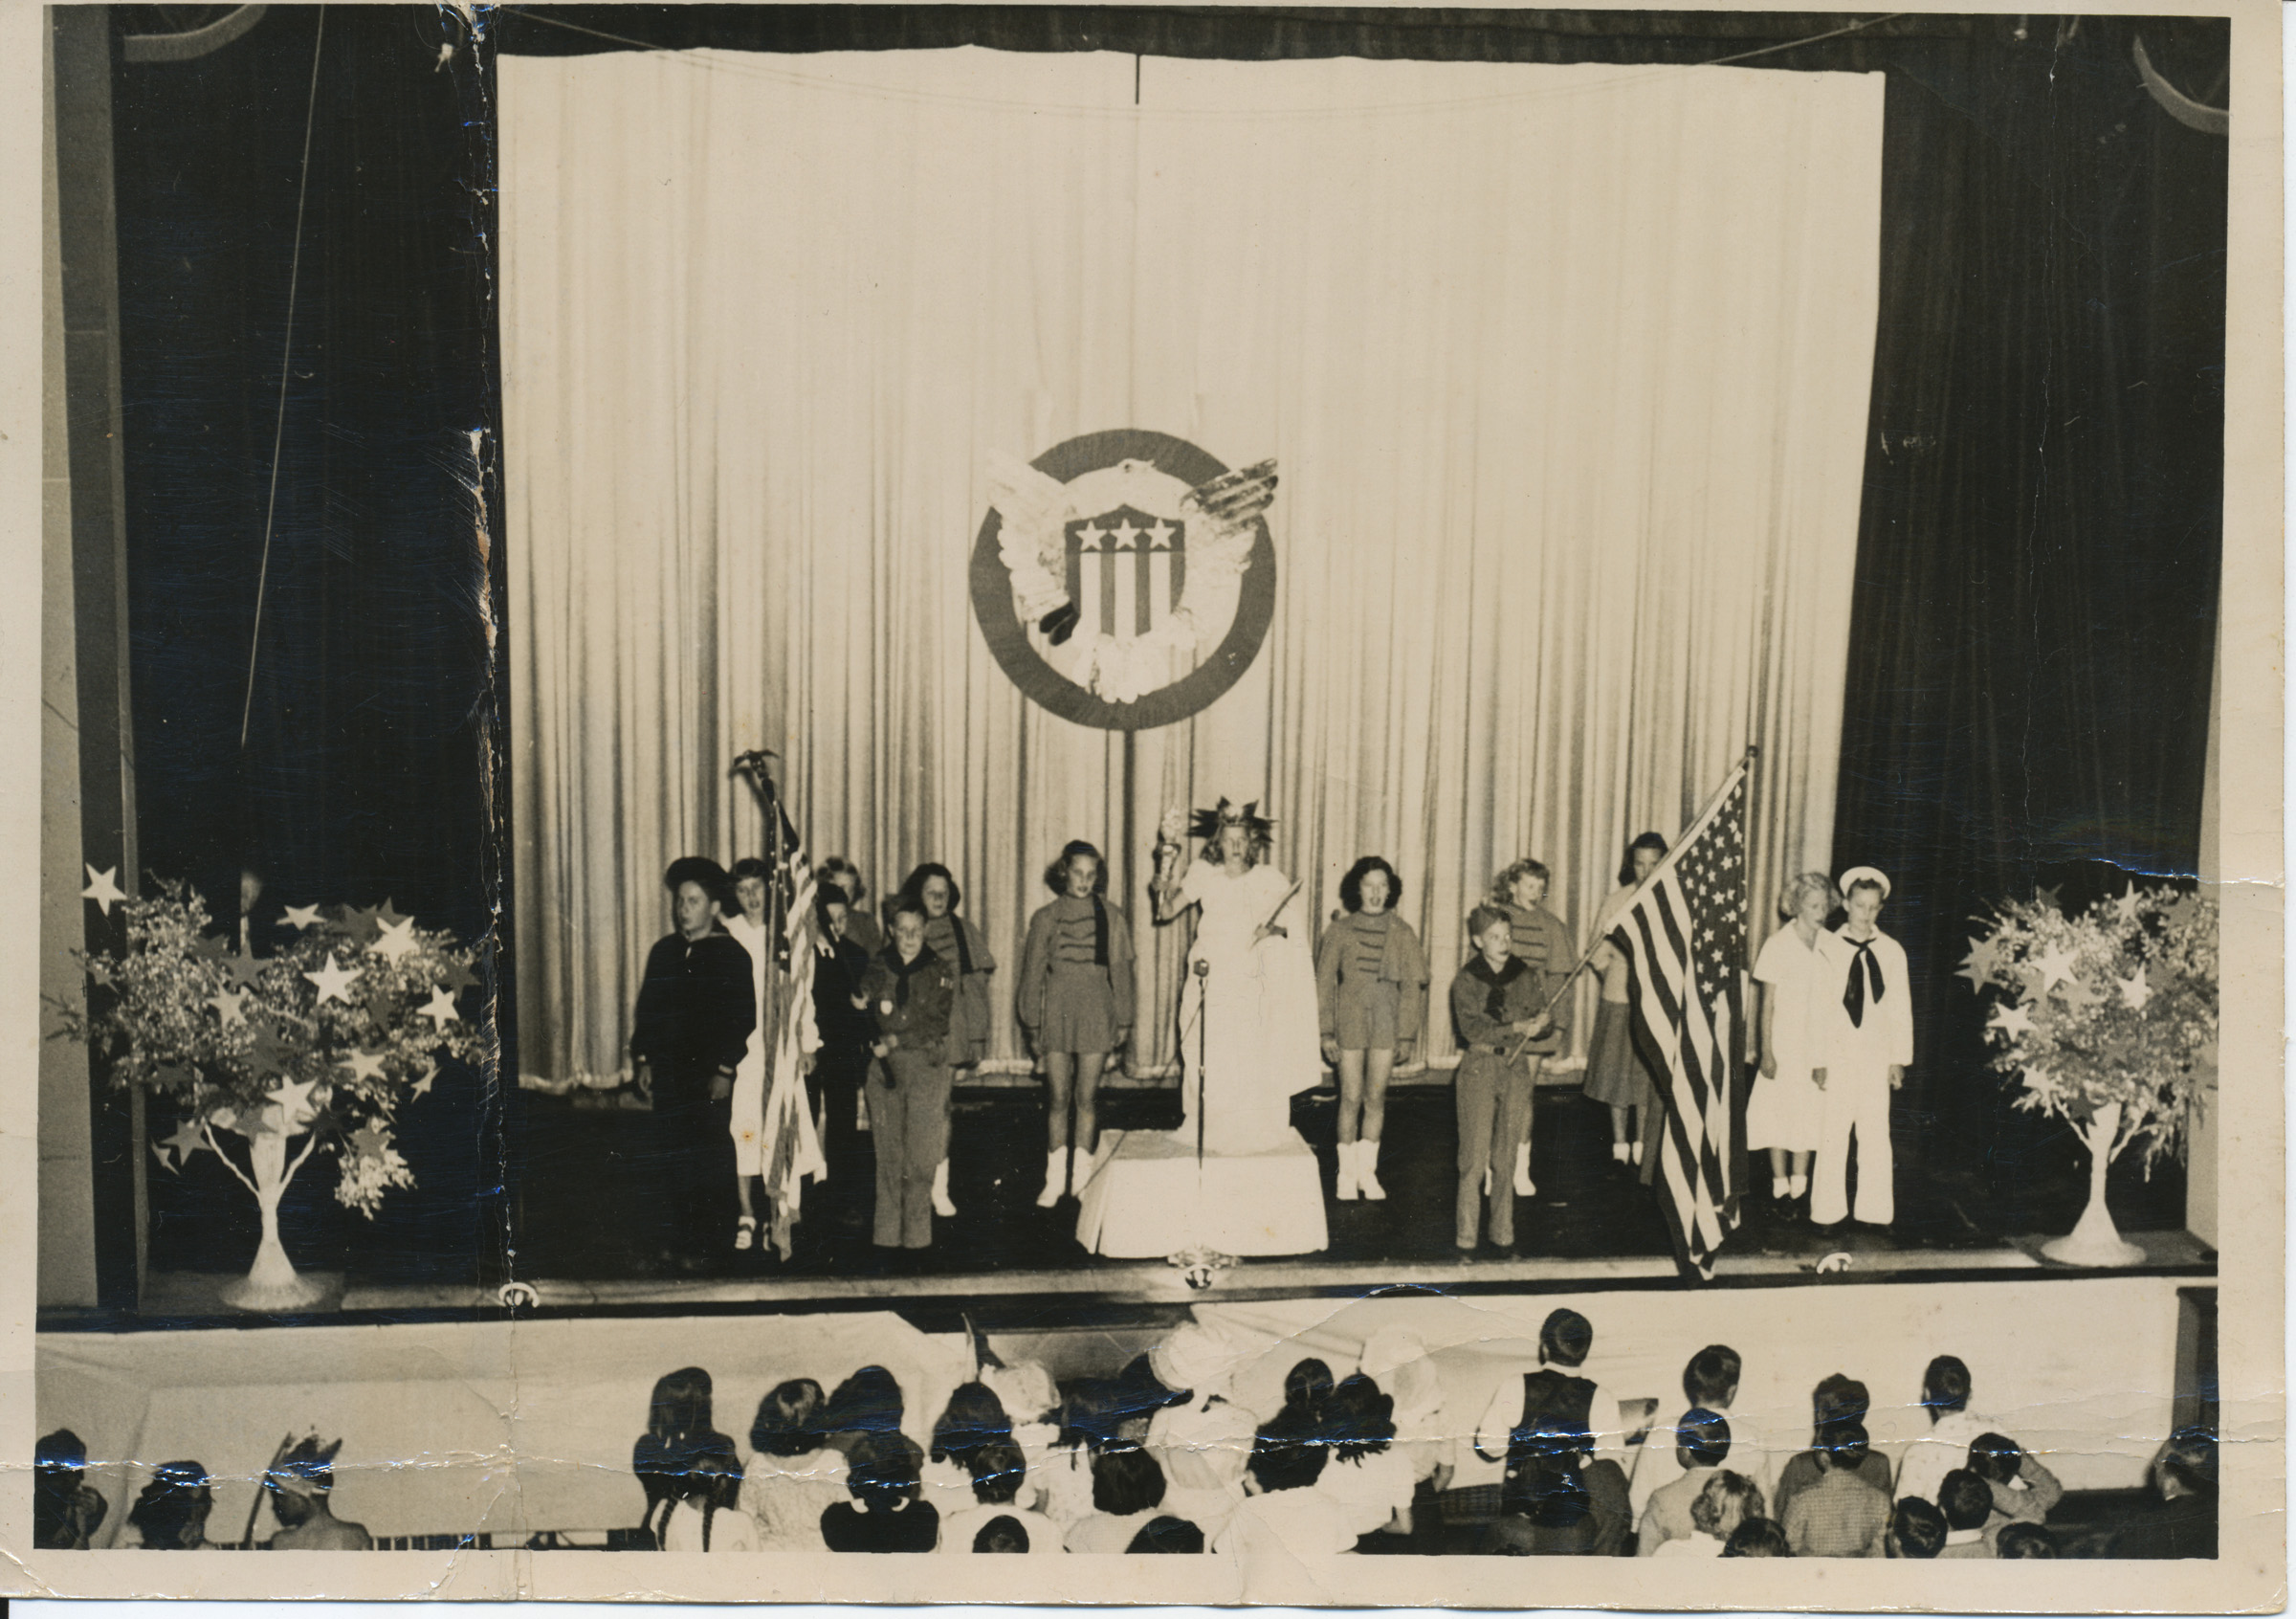 School Performance, Appalachian Theatre, Circa 1949